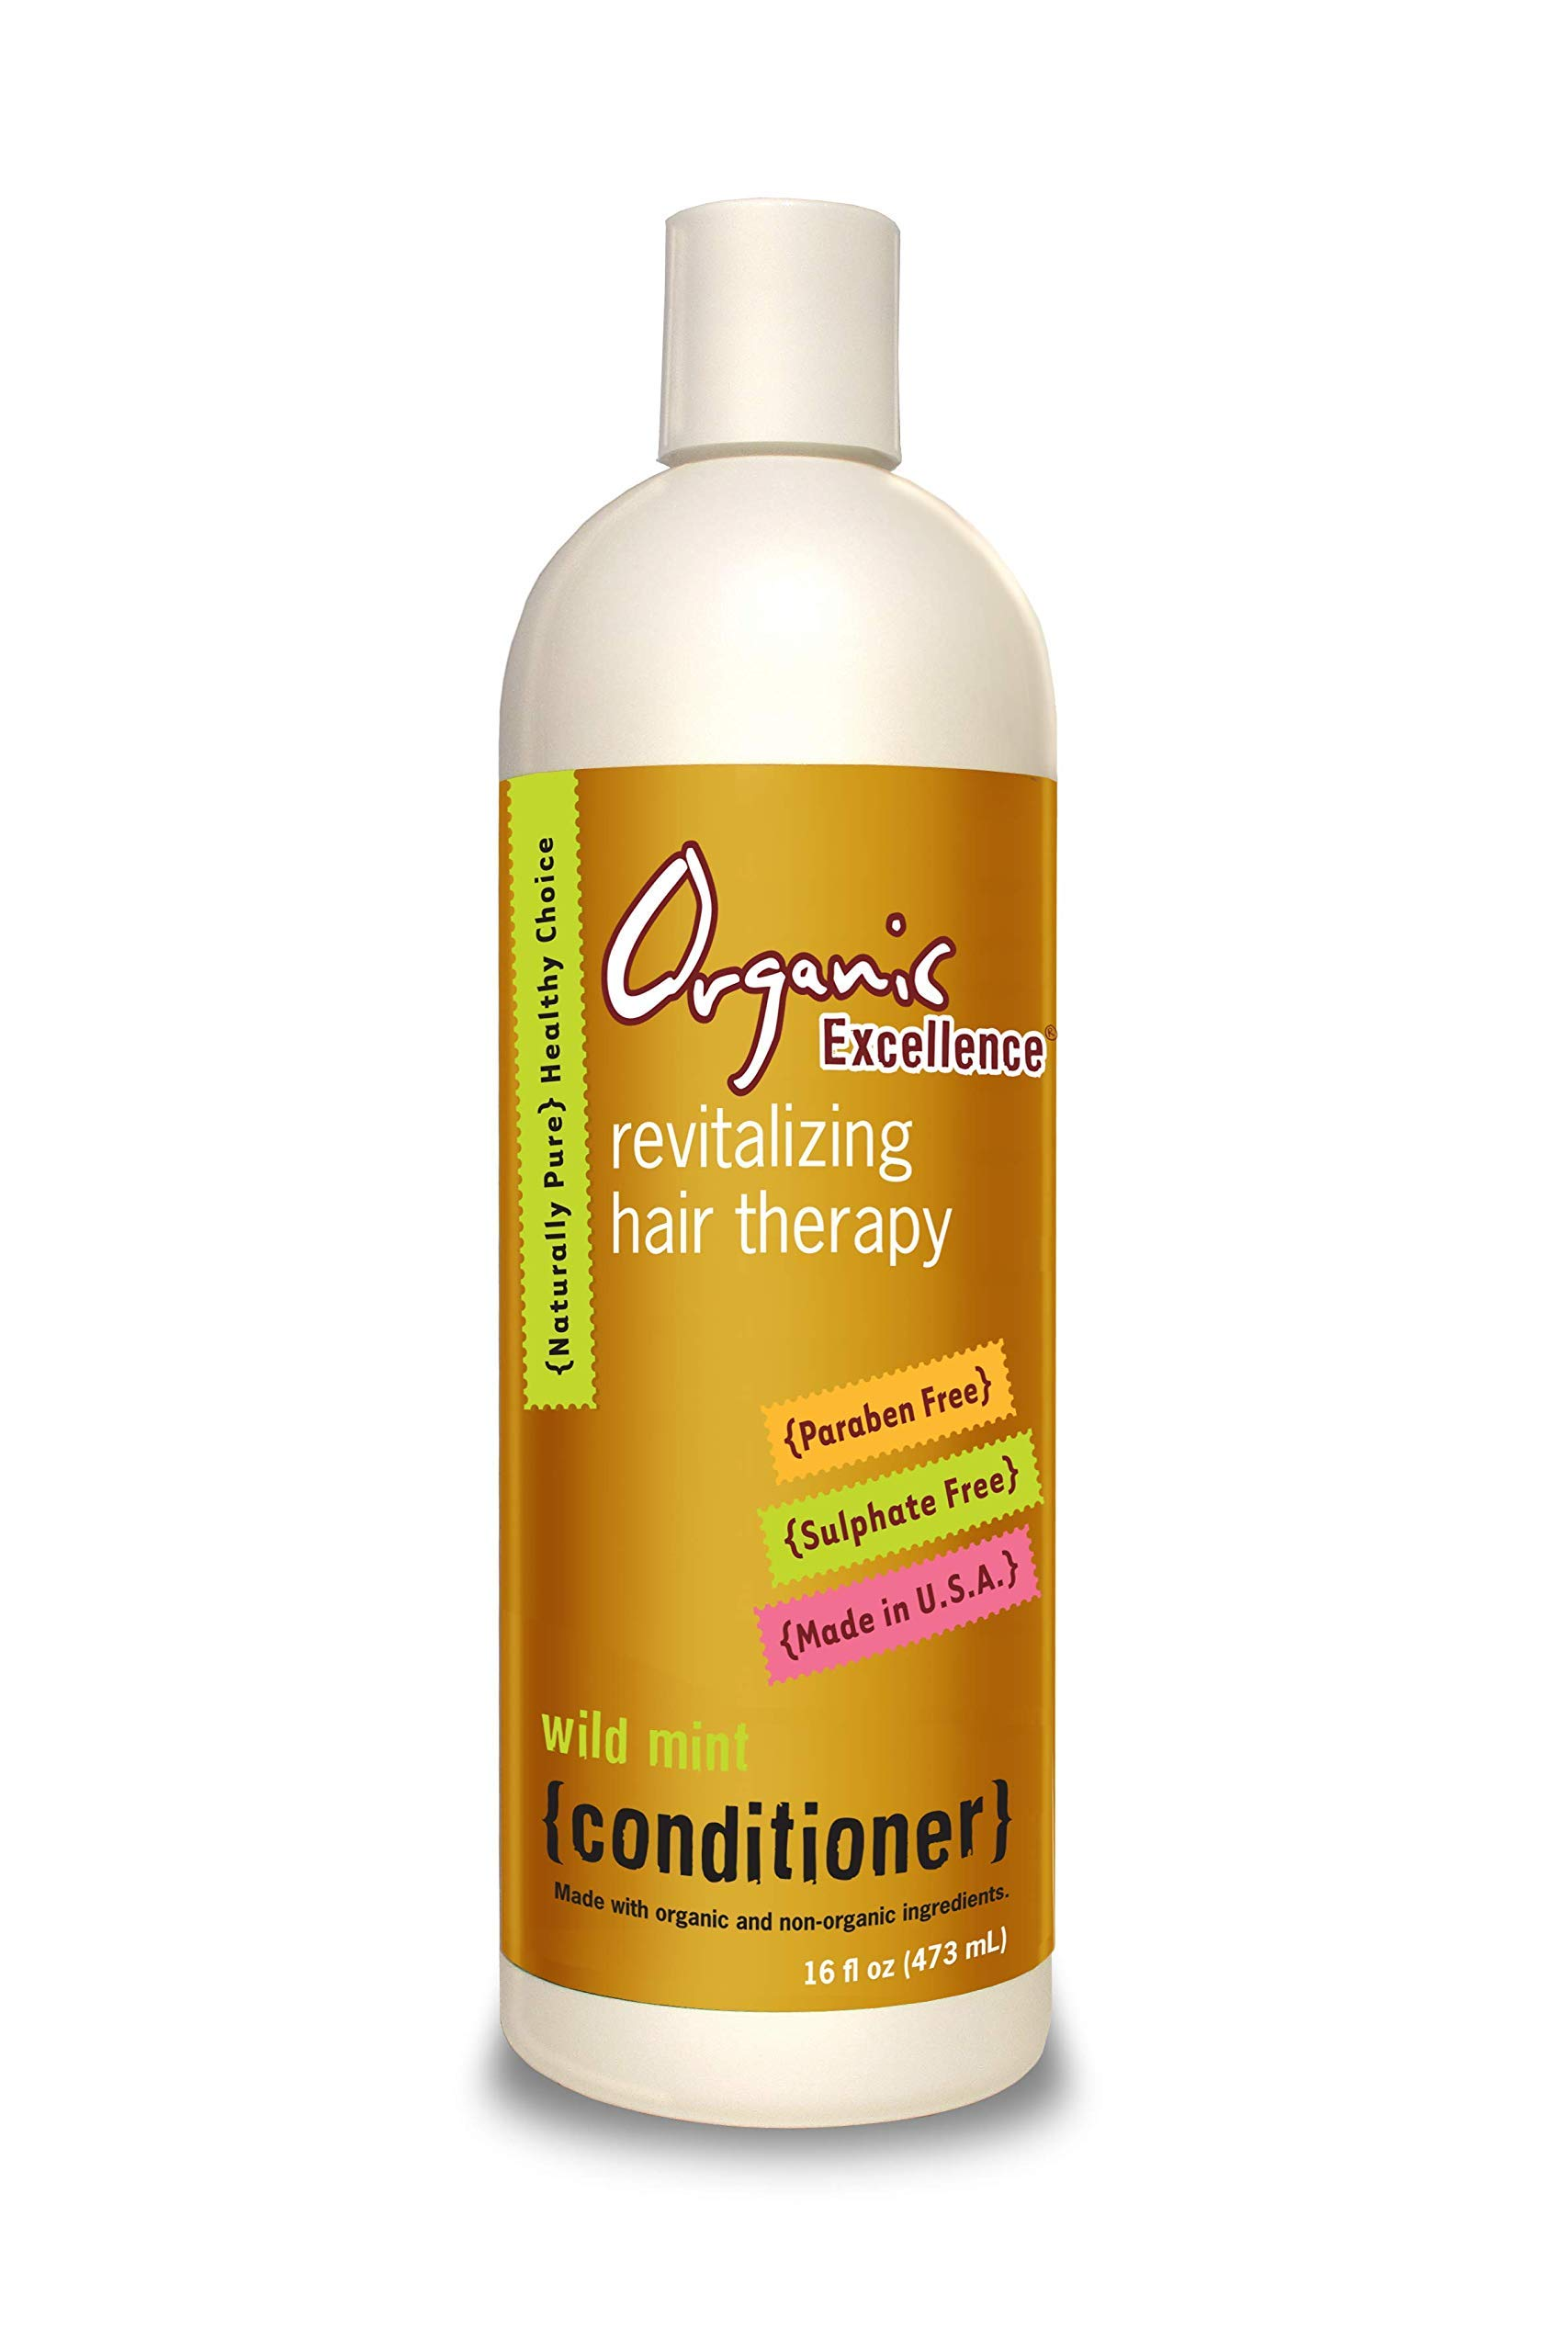 Wild Mint Conditioner, Paraben and Sulfate Free, All Natural, Color Safe - 16 oz